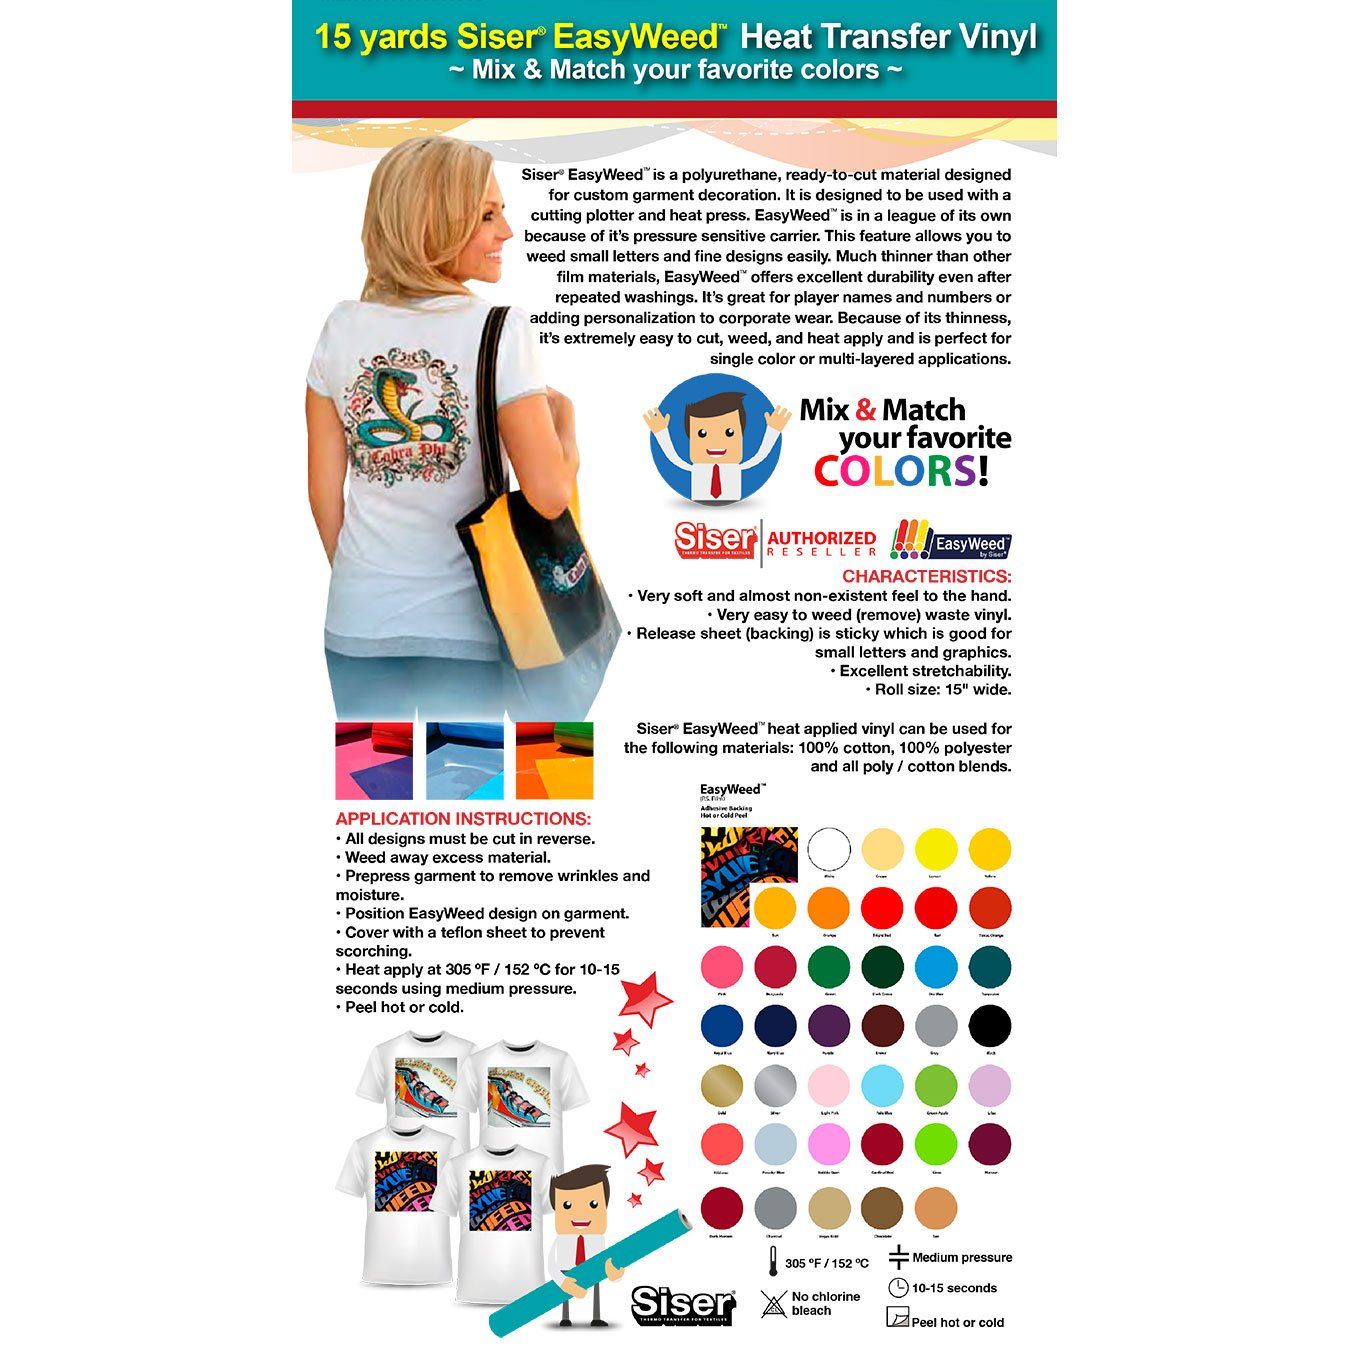 GERCUTTER Store - 15 Yards SISER EASYWEED 15'' Heat Transfer Vinyl (Mix & Match your favorite colors) by GERCUTTER USA